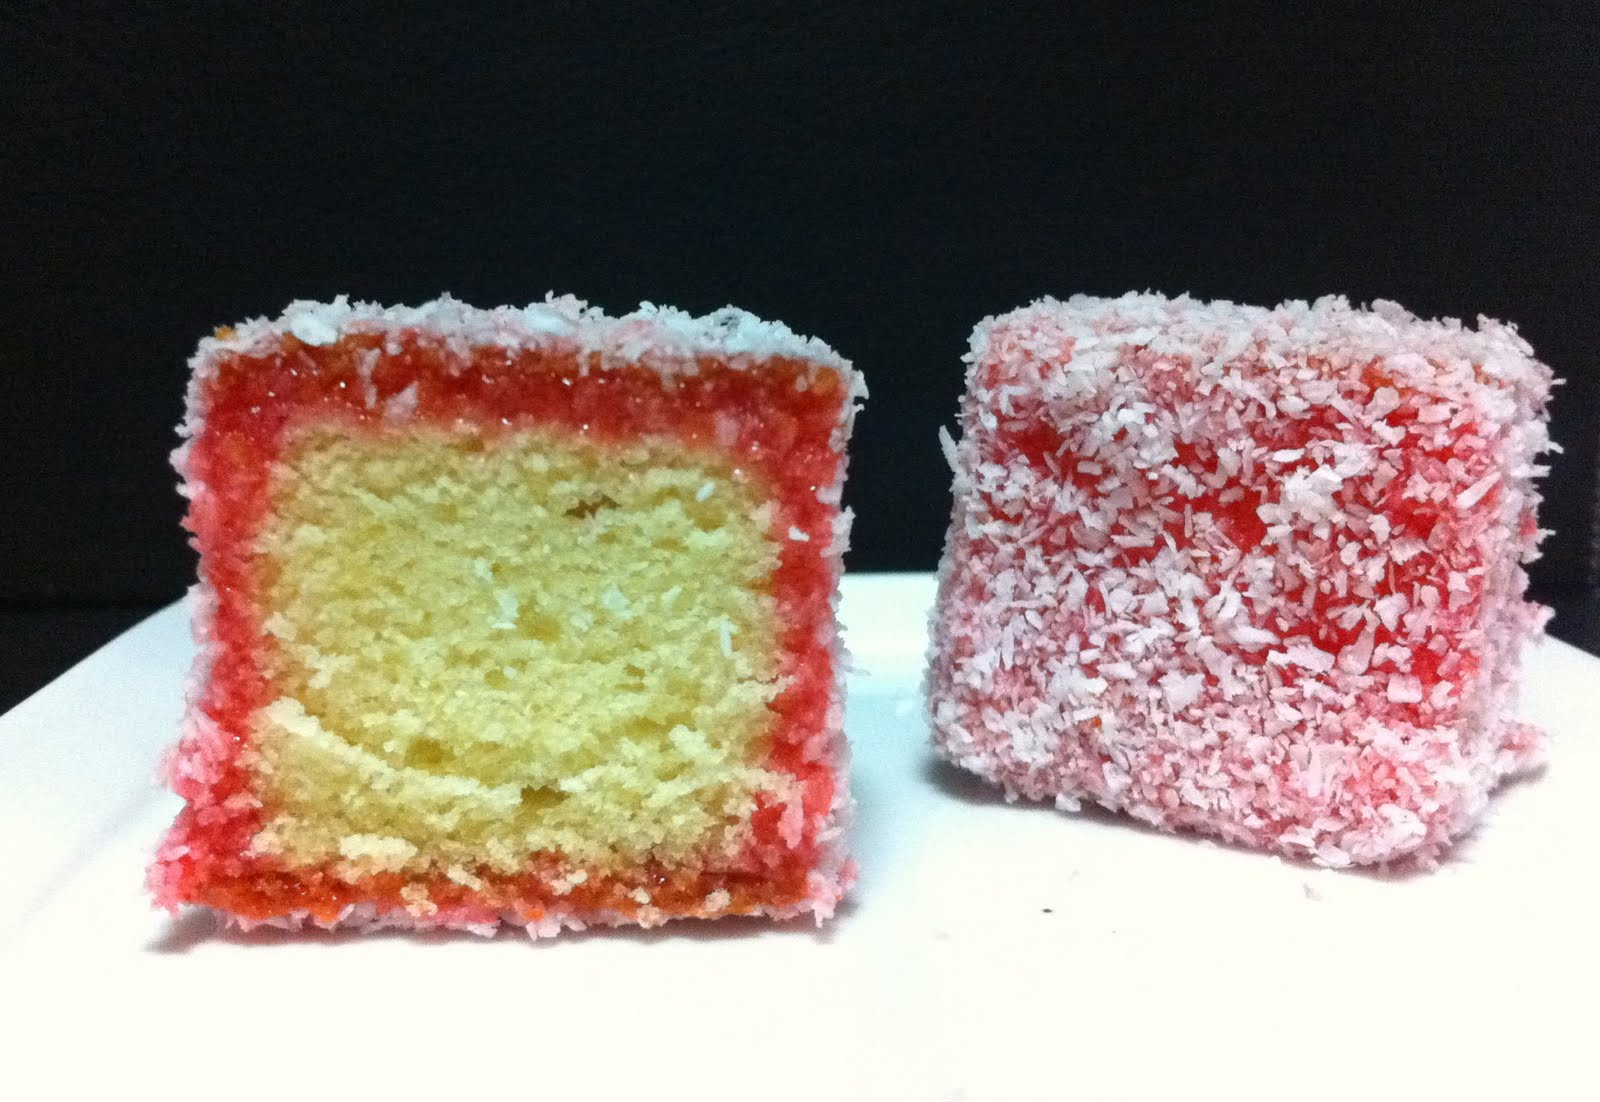 Red Jelly Cake Recipe: CookingNotes: Christmas Lamingtons